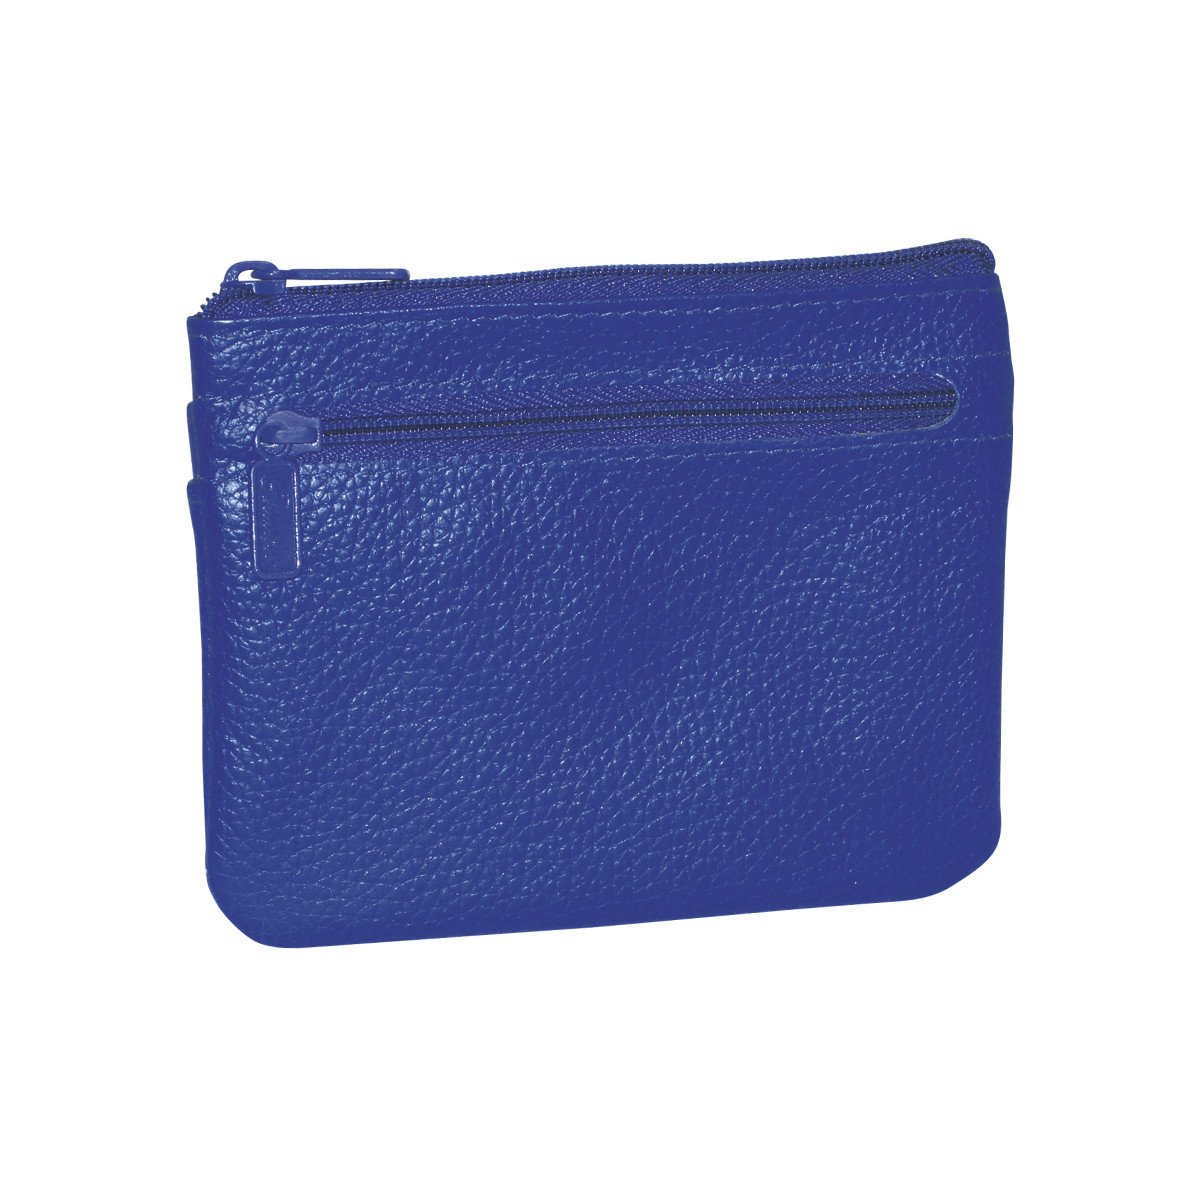 Buxton Womens Leather ID Coin Card Case Wallet, Ultramarine Blue